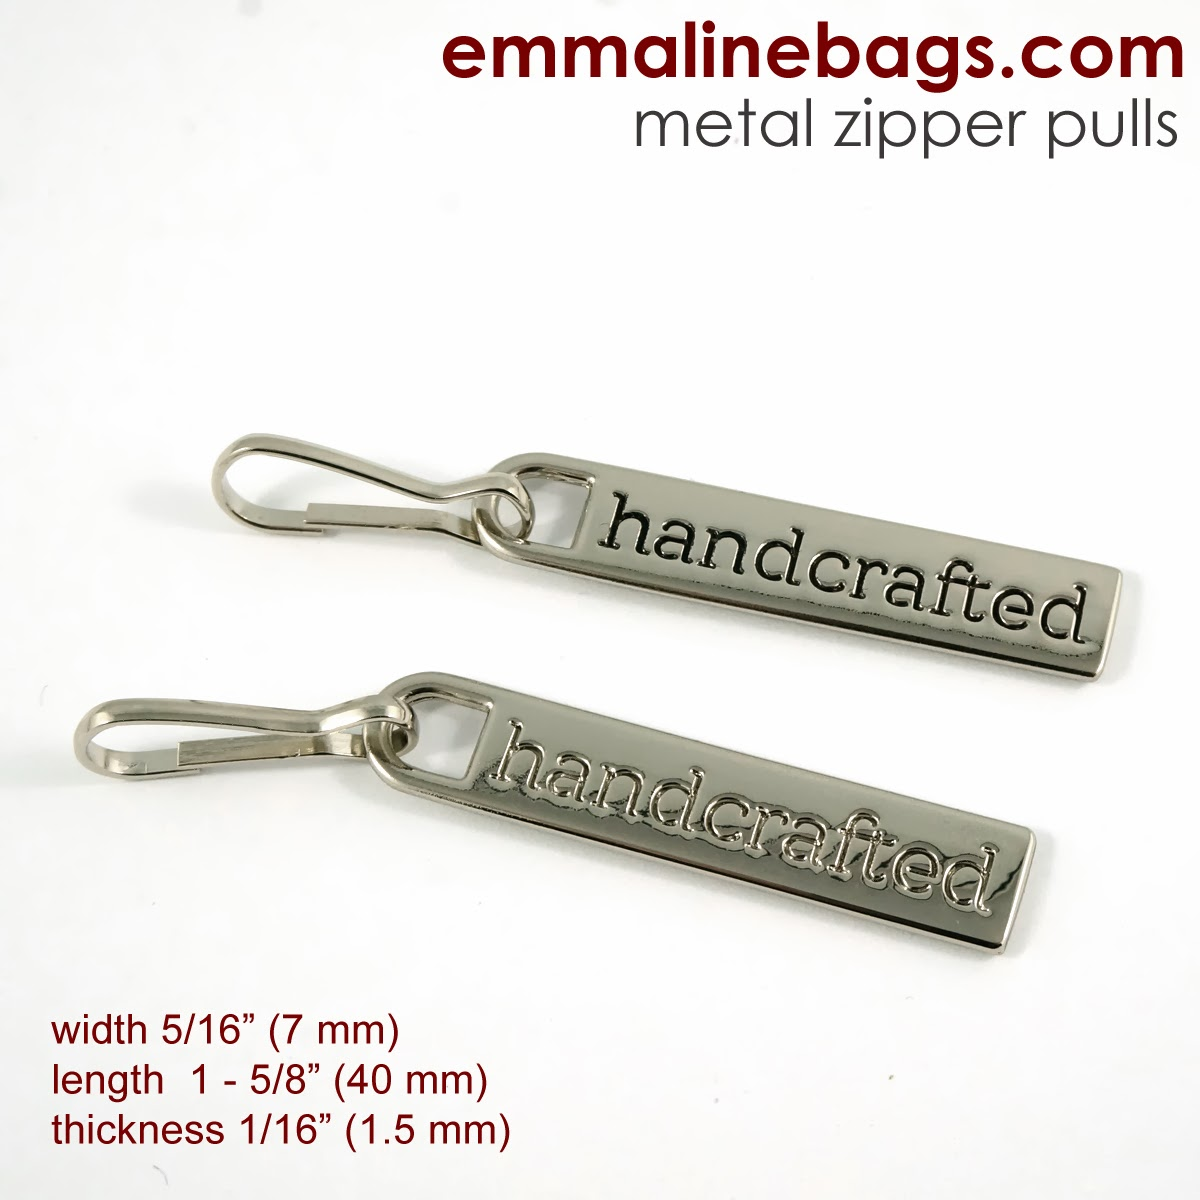 Zipper pulls for Jackets and bags